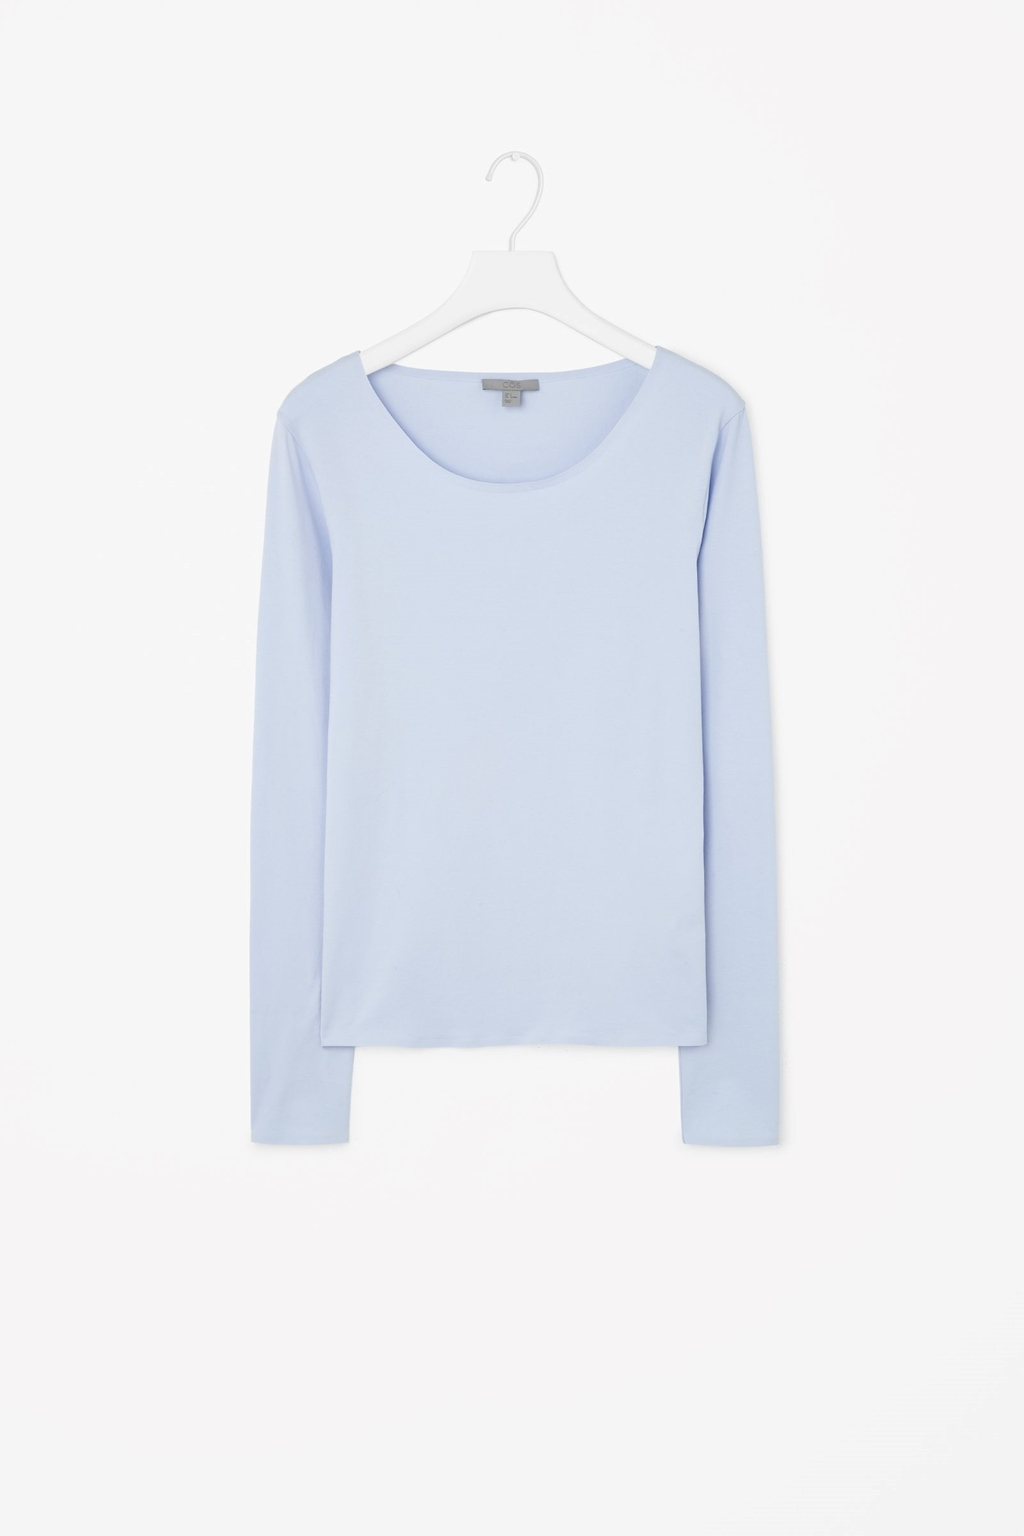 Long Sleeve Cotton T Shirt - pattern: plain; style: t-shirt; predominant colour: pale blue; secondary colour: pale blue; occasions: casual, creative work; length: standard; neckline: scoop; fibres: cotton - 100%; fit: body skimming; sleeve length: long sleeve; sleeve style: standard; pattern type: fabric; texture group: jersey - stretchy/drapey; season: s/s 2015